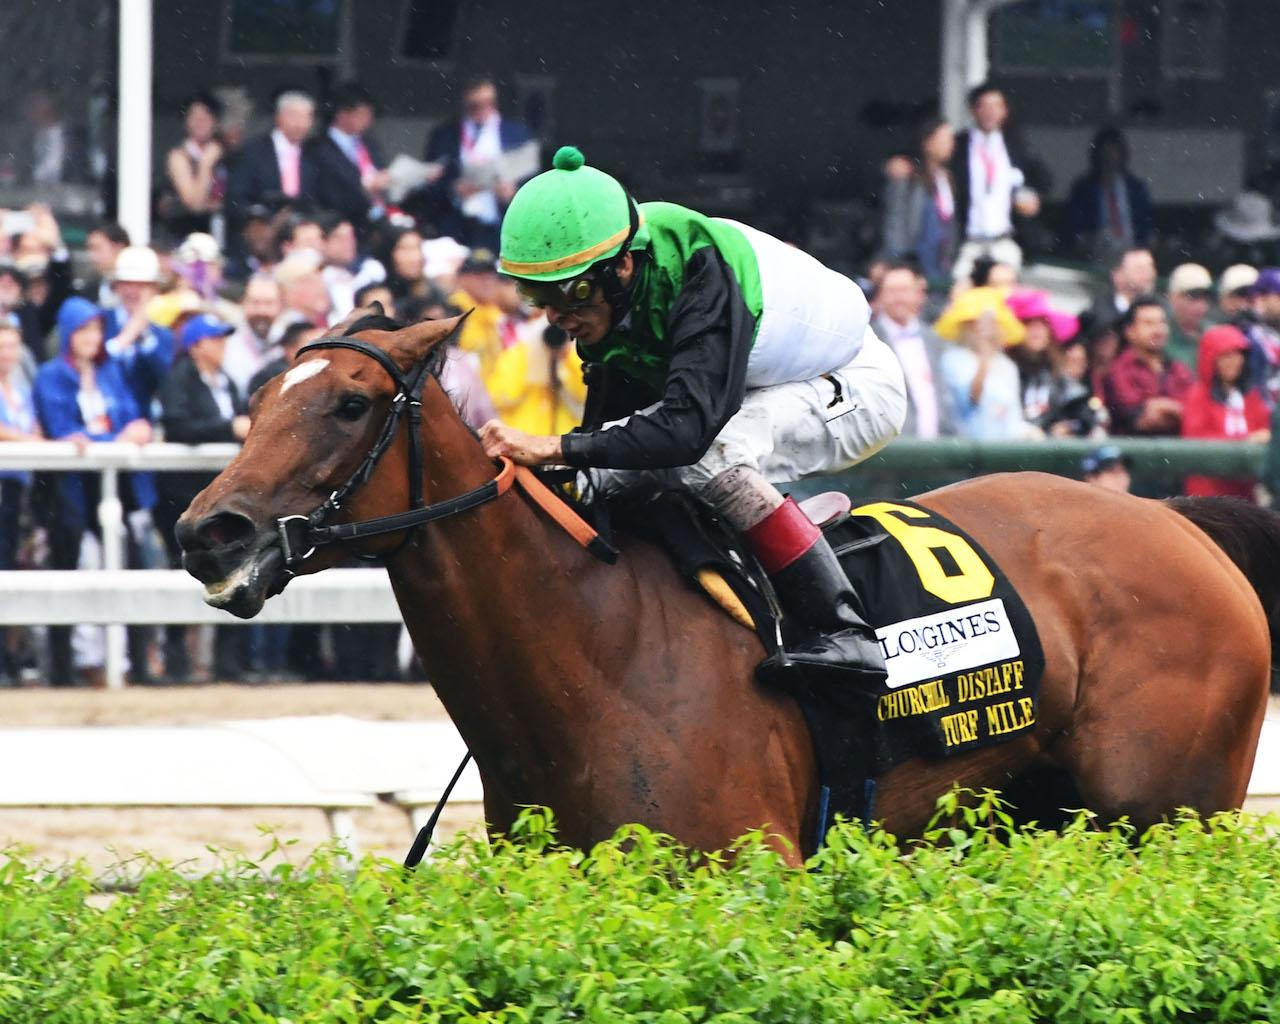 PROCTOR'S LEDGE - The Longines Churchill Distaff Turf Mile G2 - 33rd Running - 05-05-18 - R07 - CD - Inside Finish 01